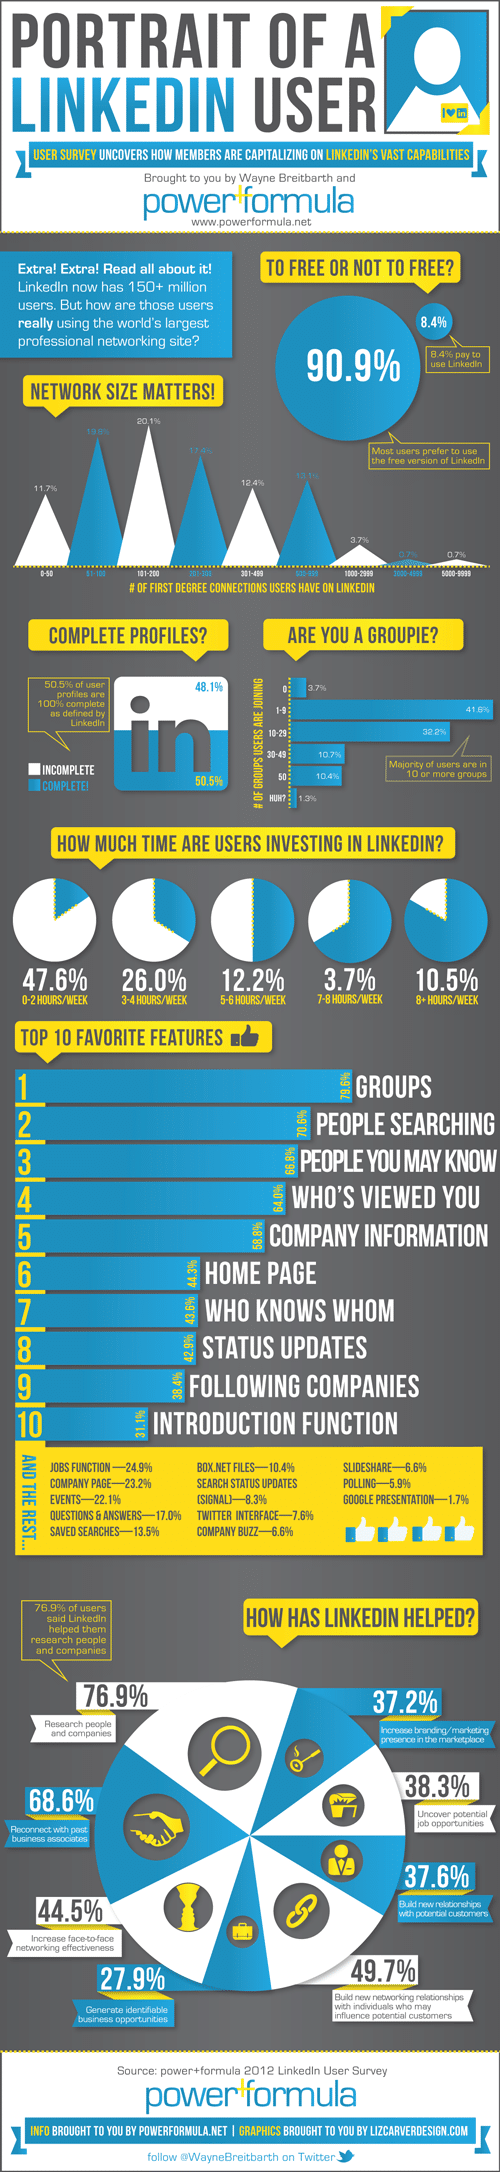 How to harness the power of LinkedIn - Infographic